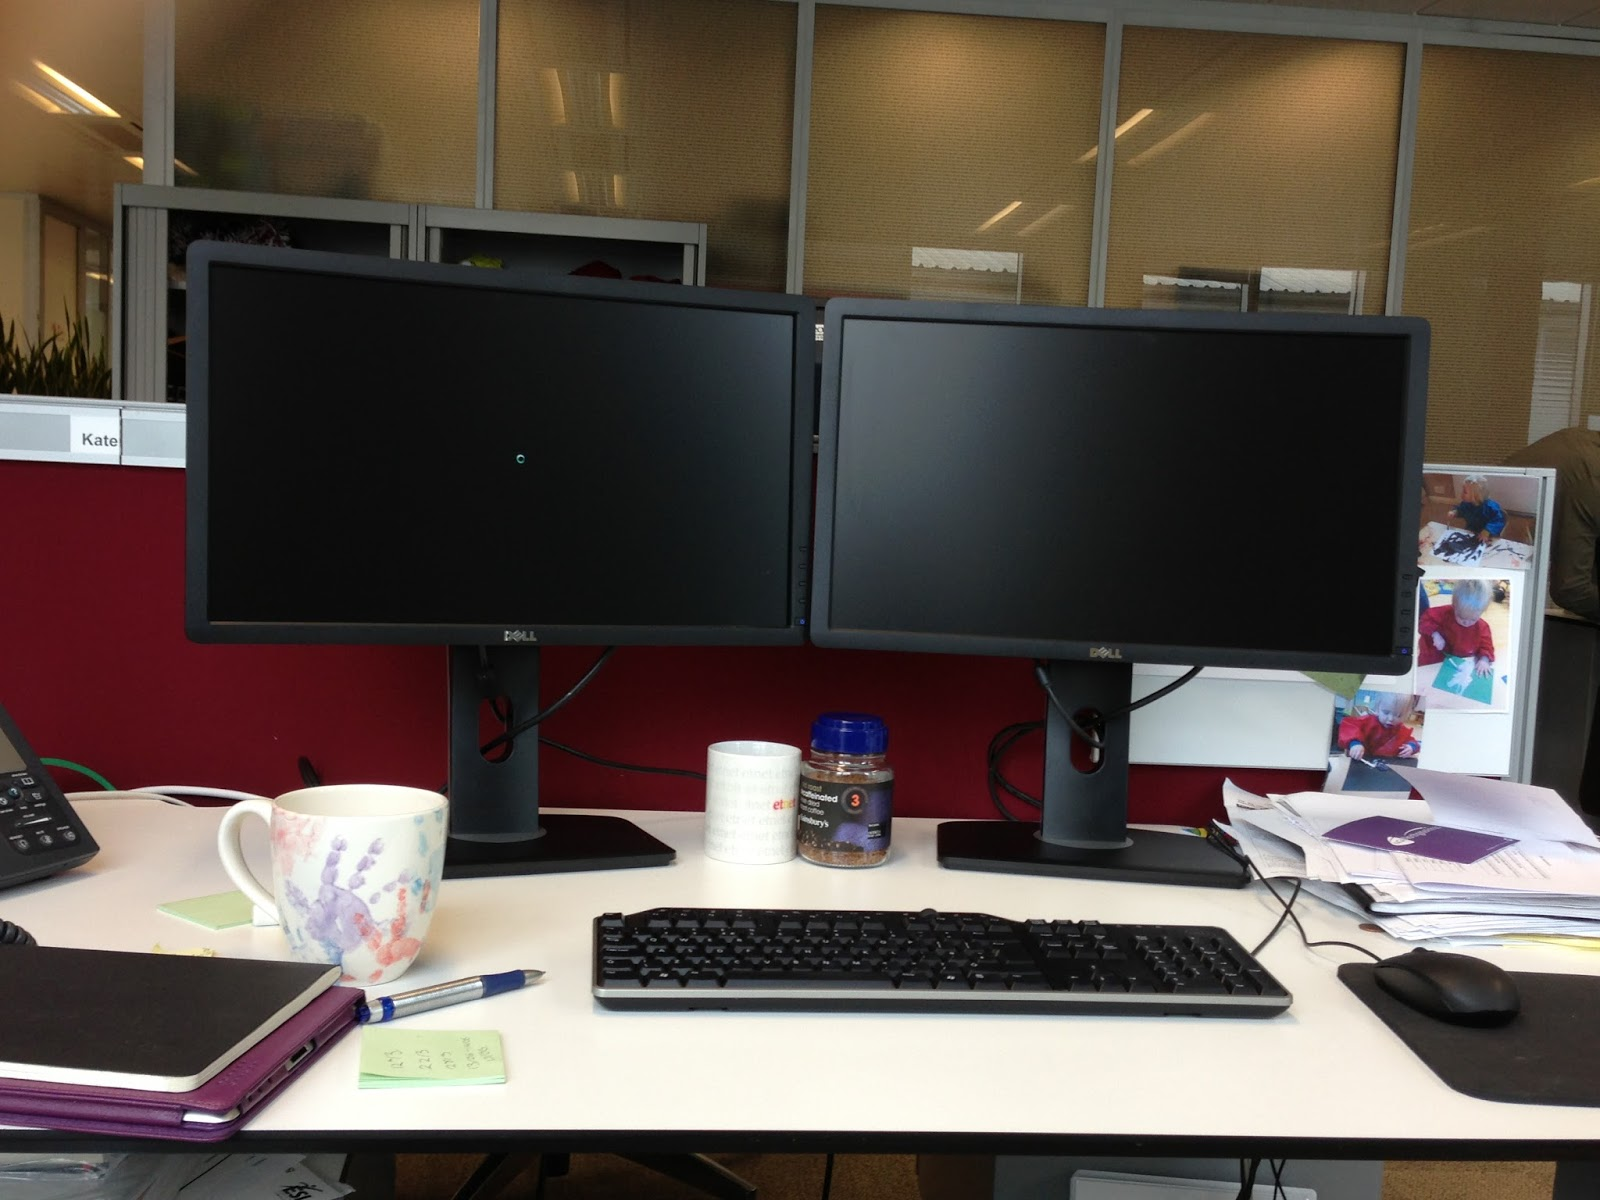 A desk in an open plan office with two monitors, phone and other desk stuff